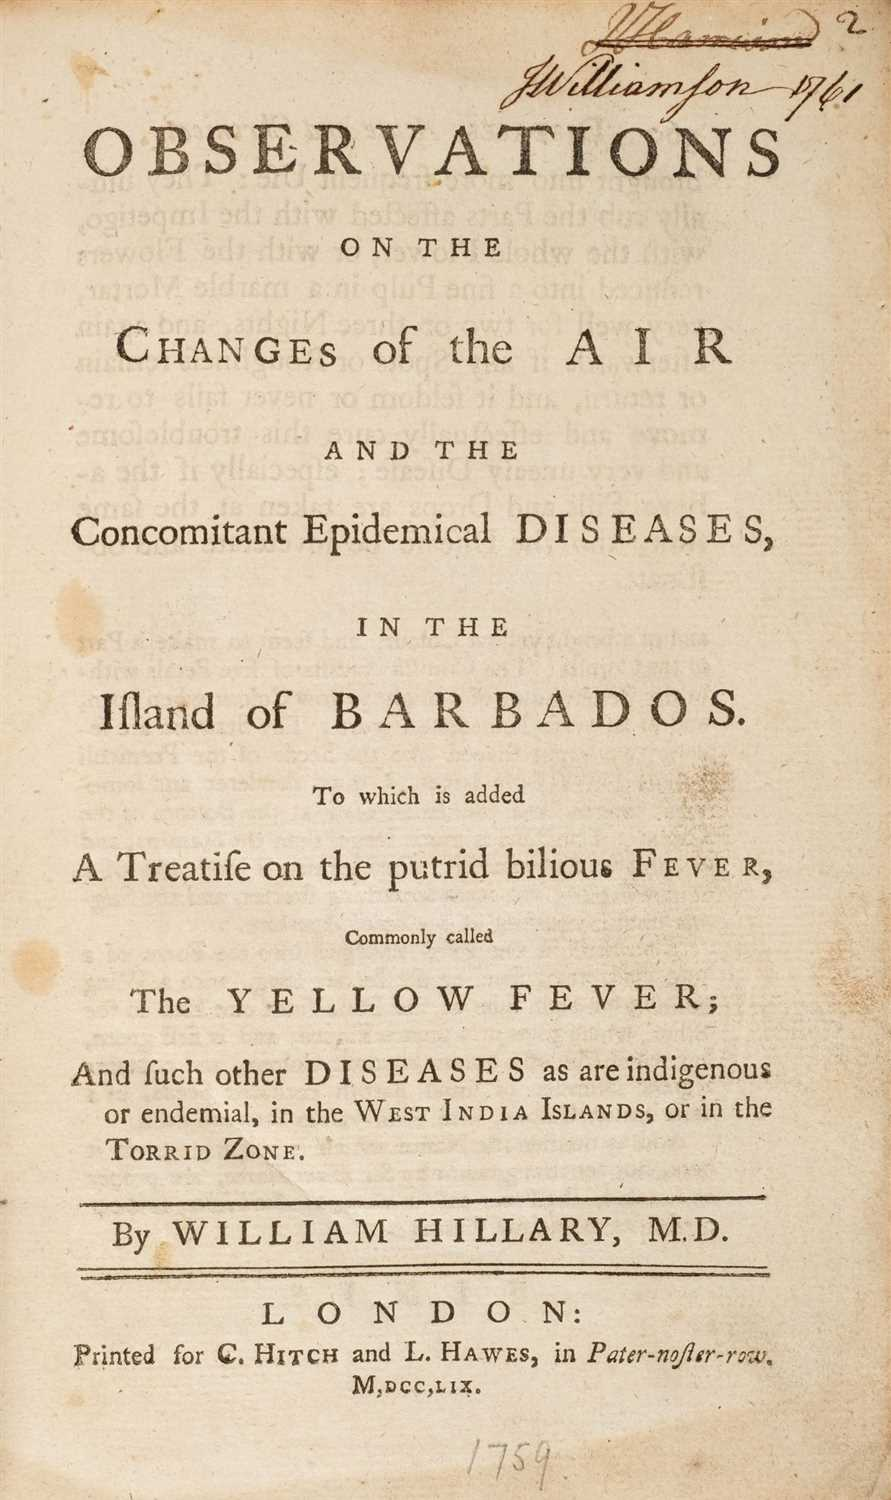 Lot 226 - Hillary (William). Observations on the Changes of the Air ... in the Island of Barbados, 1759